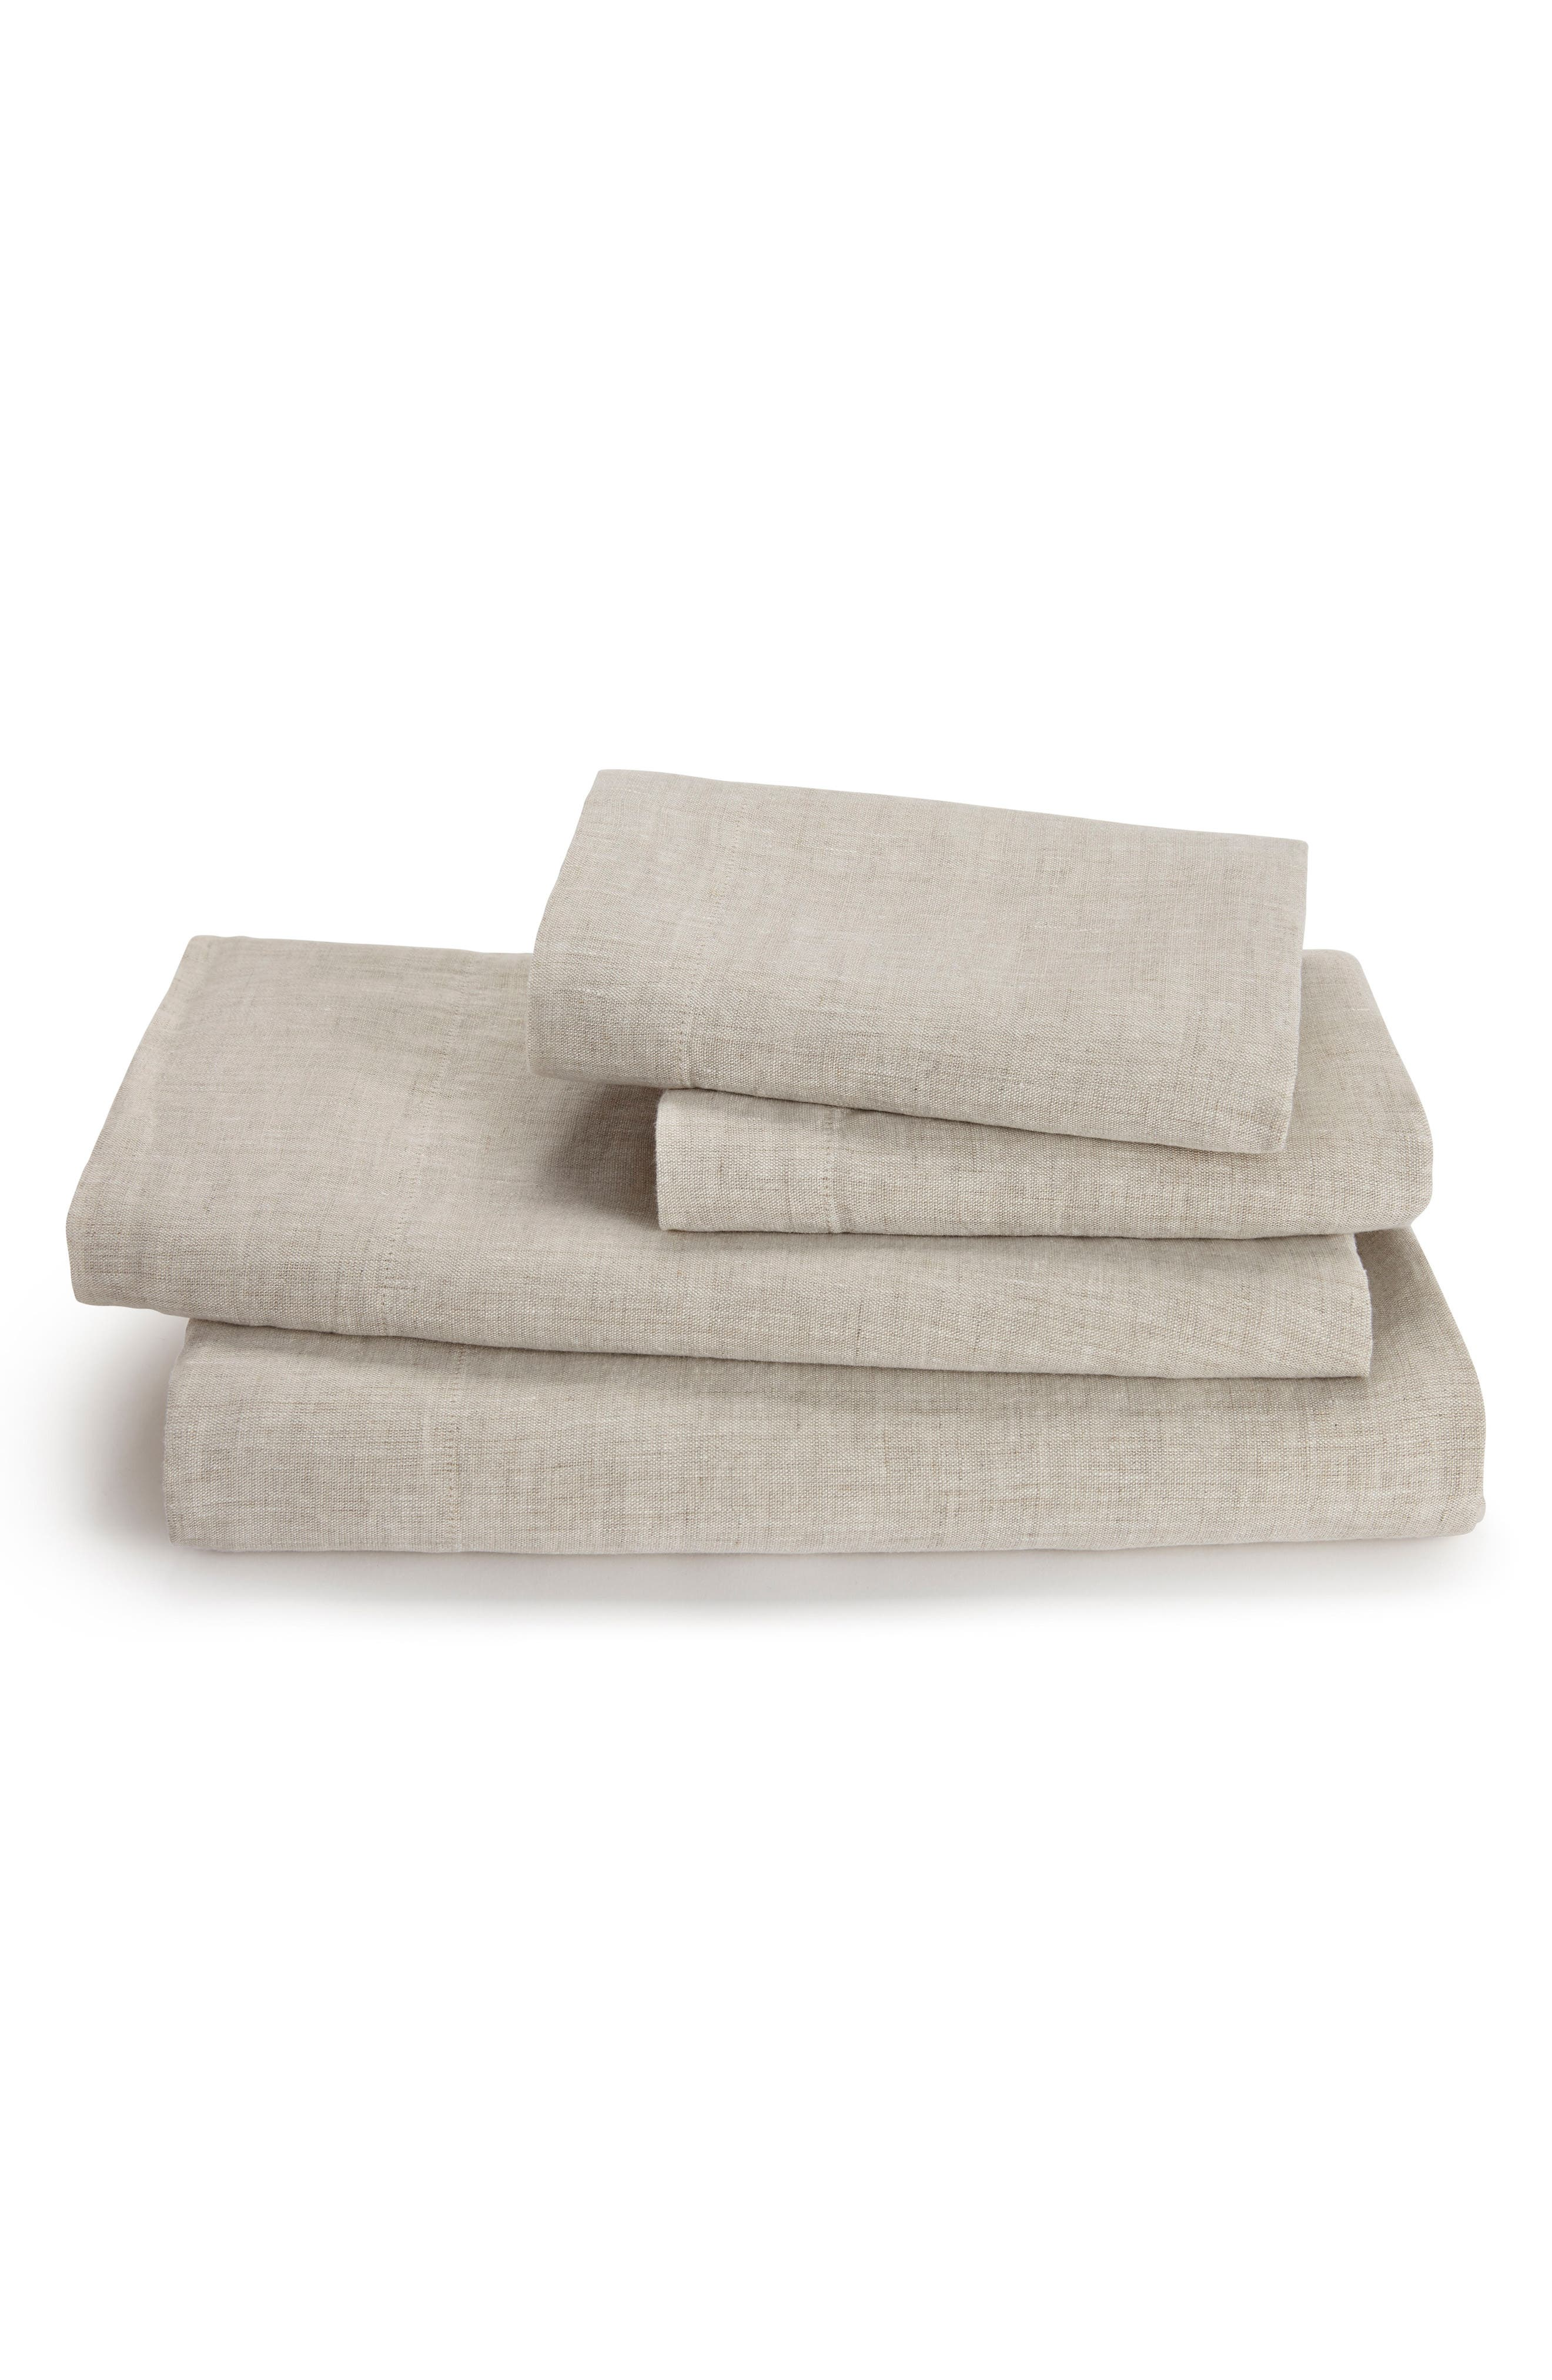 Alternate Image 1 Selected - KASSATEX Lino Linen 300 Thread Count Fitted Sheet